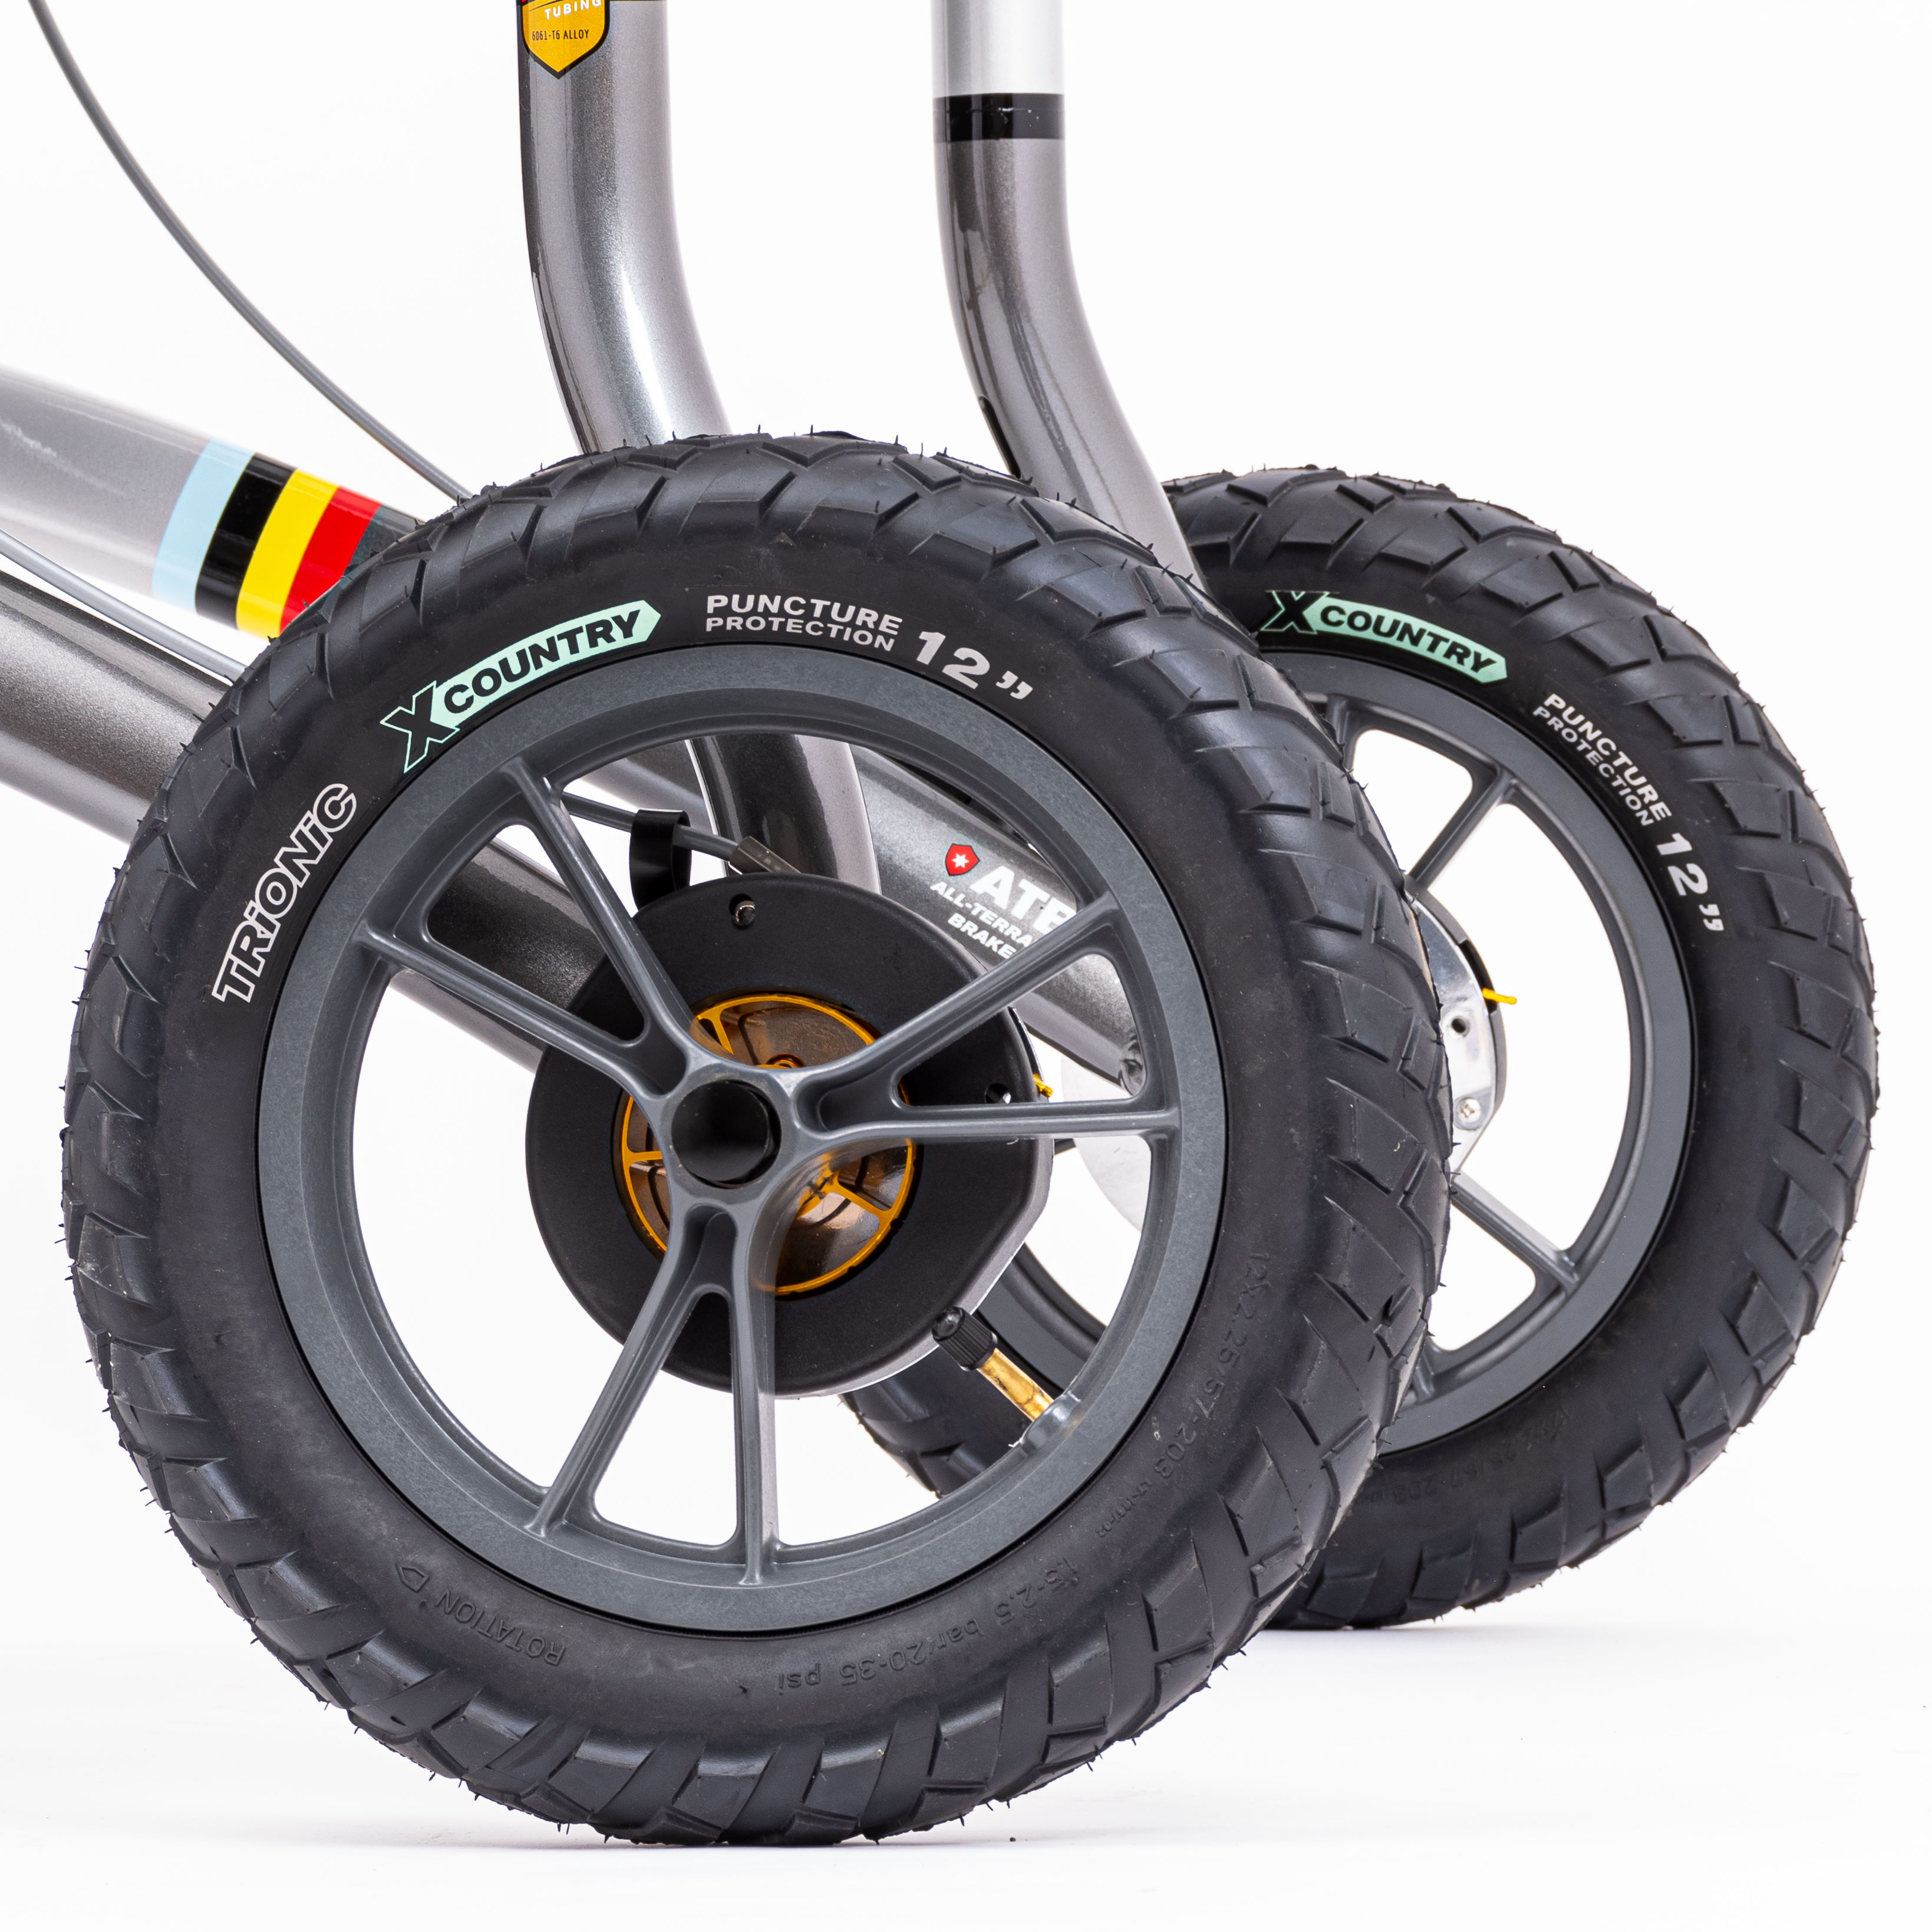 Trionic X-Country Tires